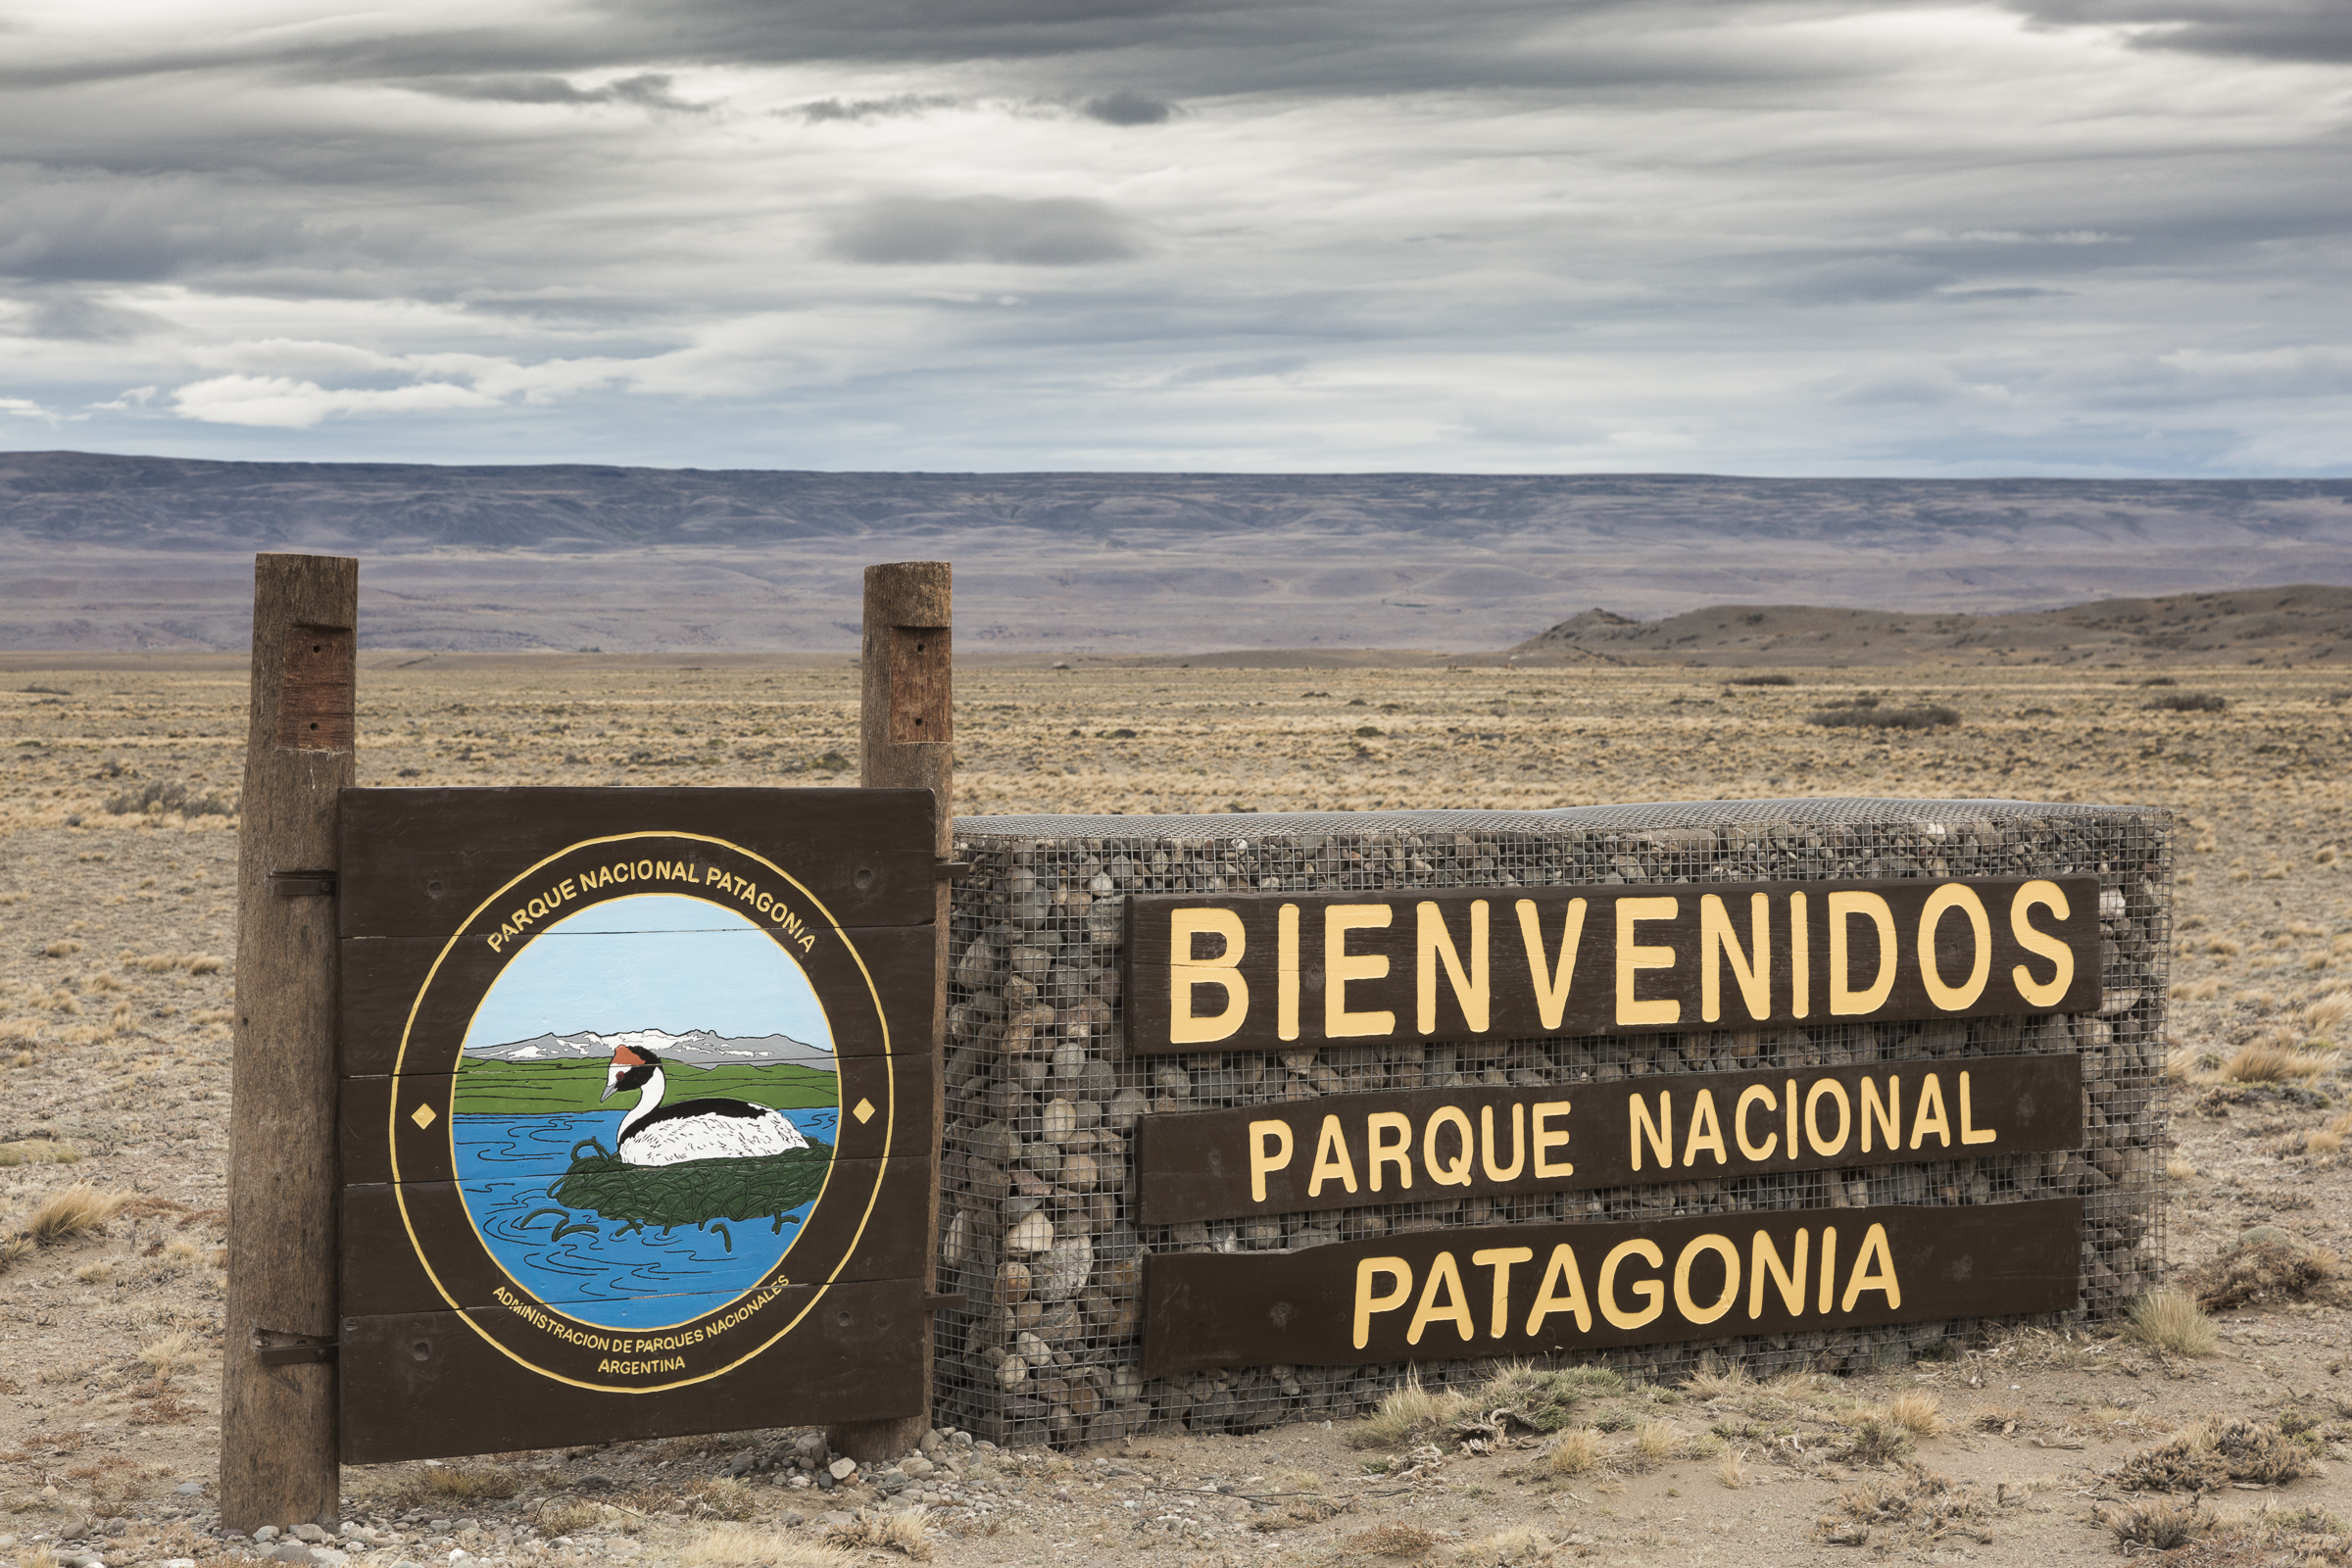 The recently established Patagonia National Park incorporates critical breeding habitat for the hooded grebe on the Buenos Aires Lake Plateau, seen in the distance.